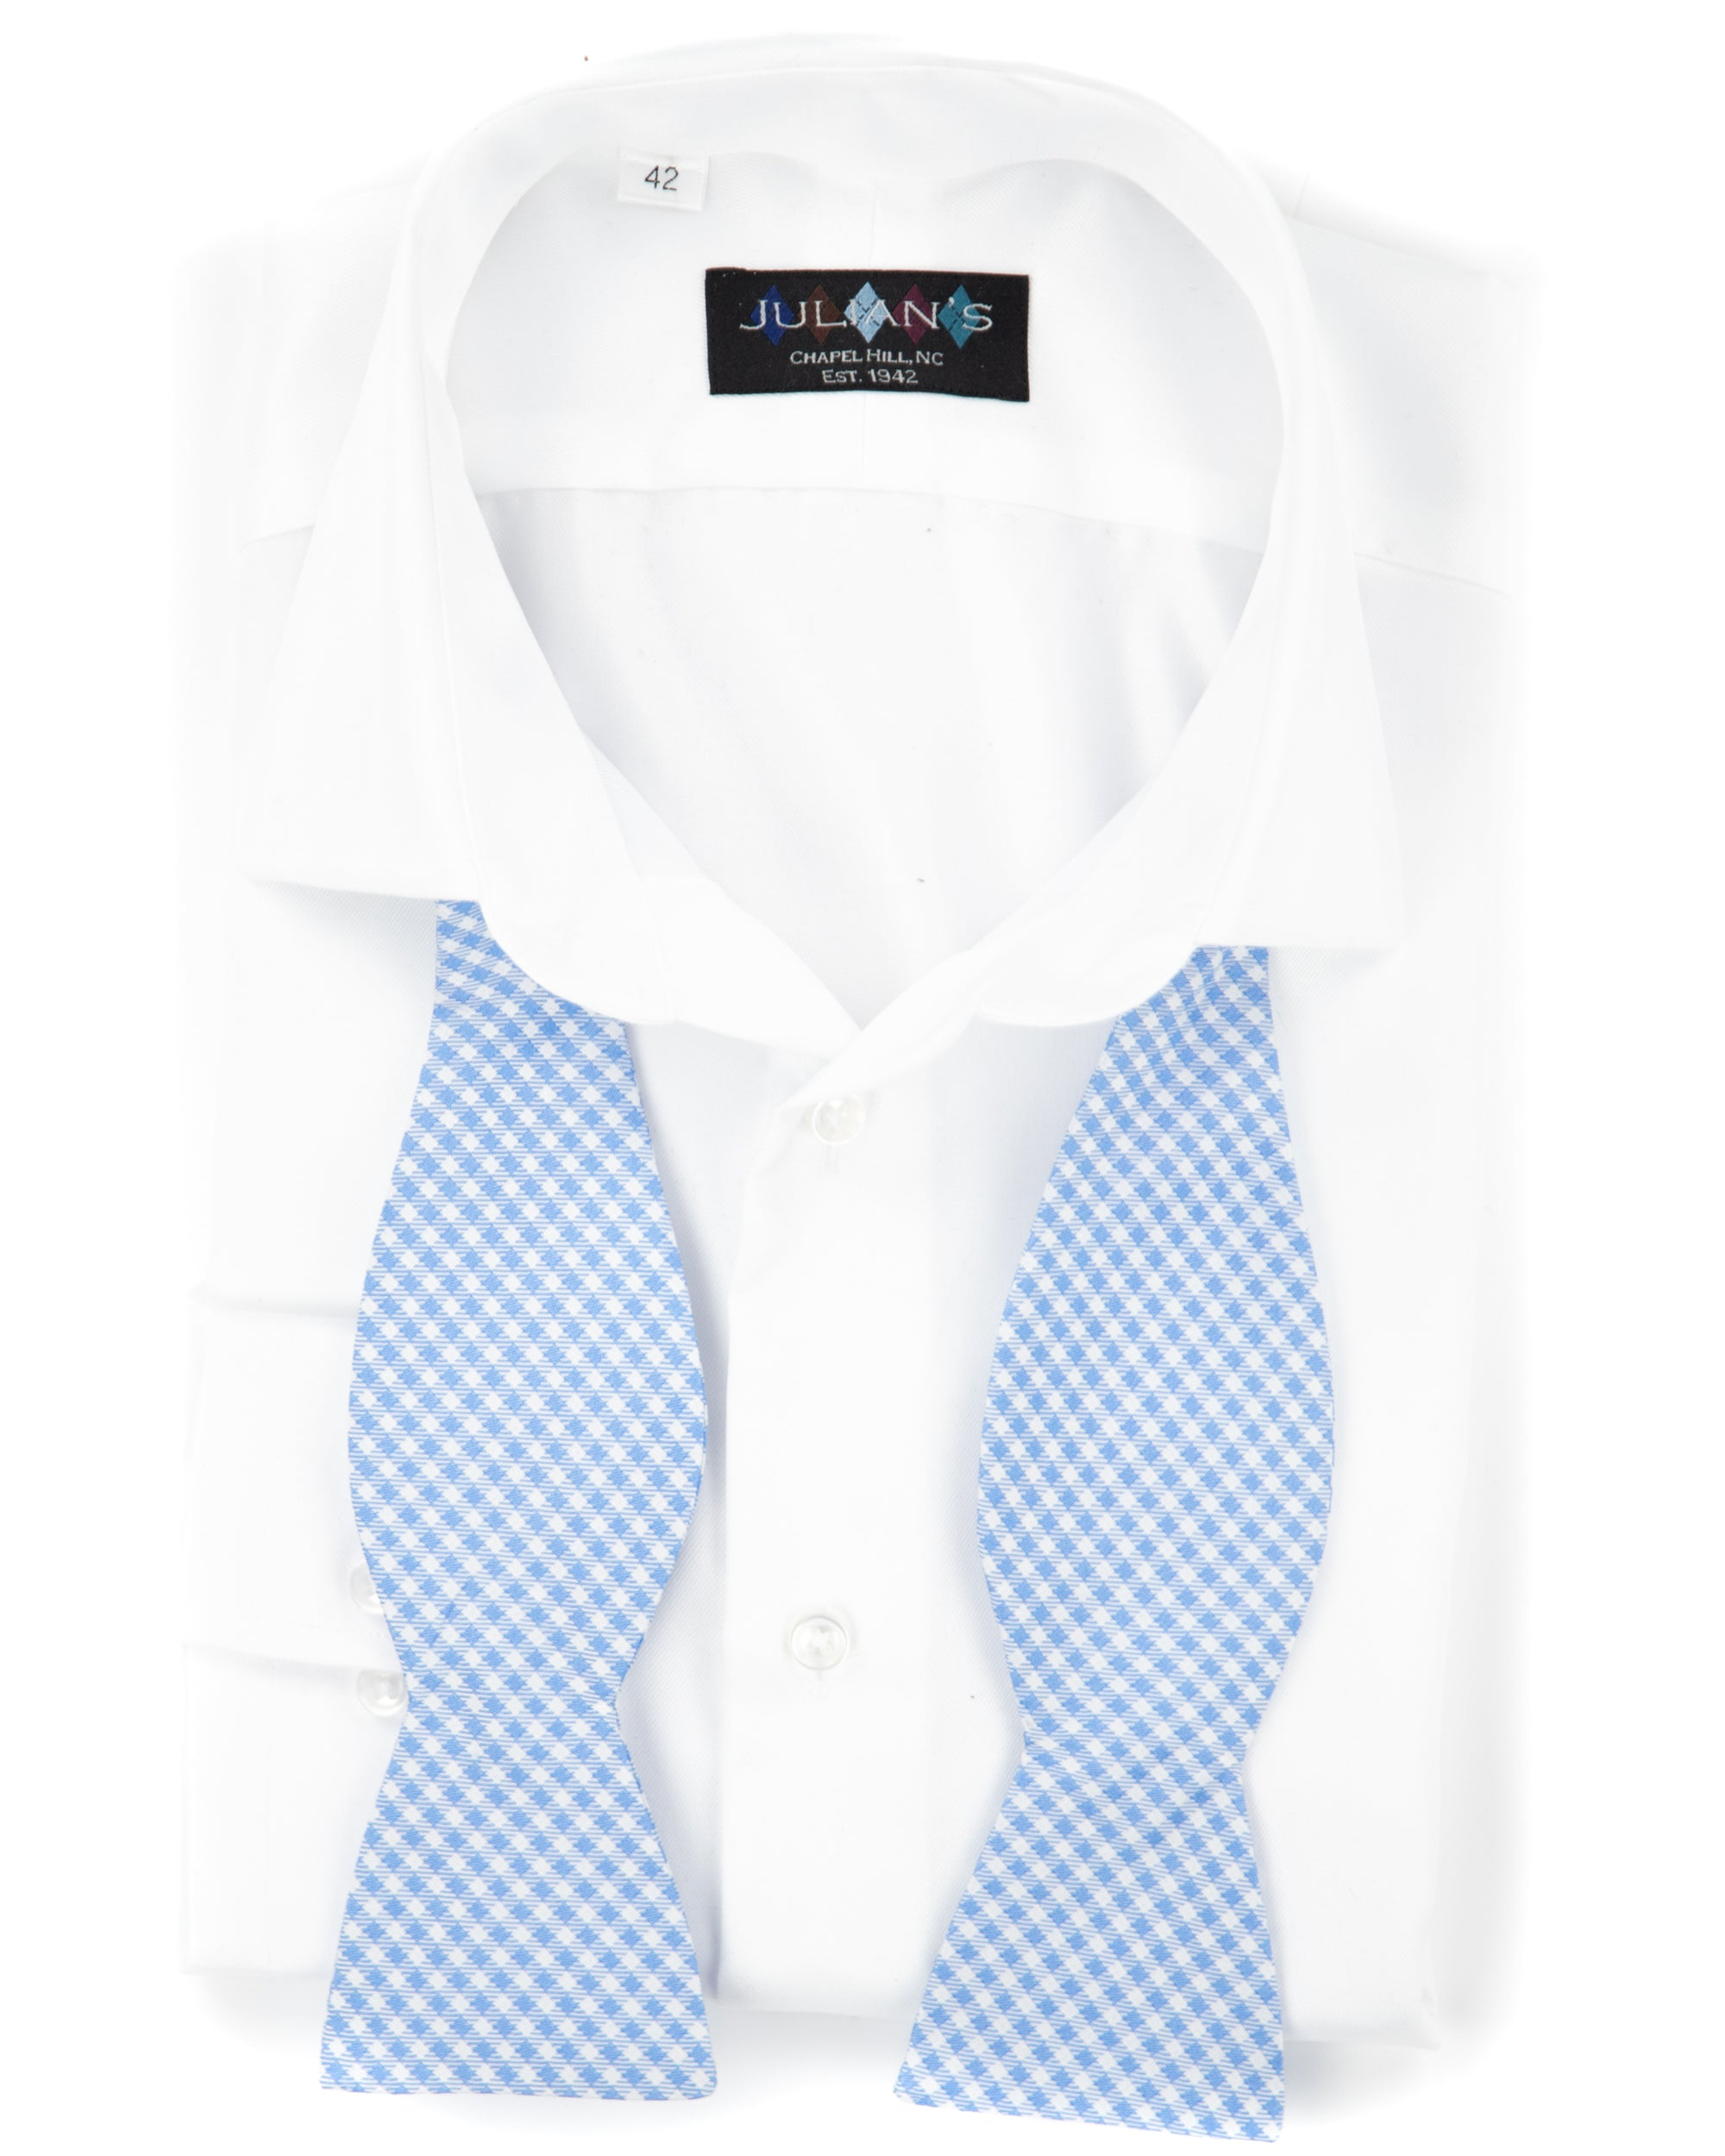 True Blues Gingham Bow Tie